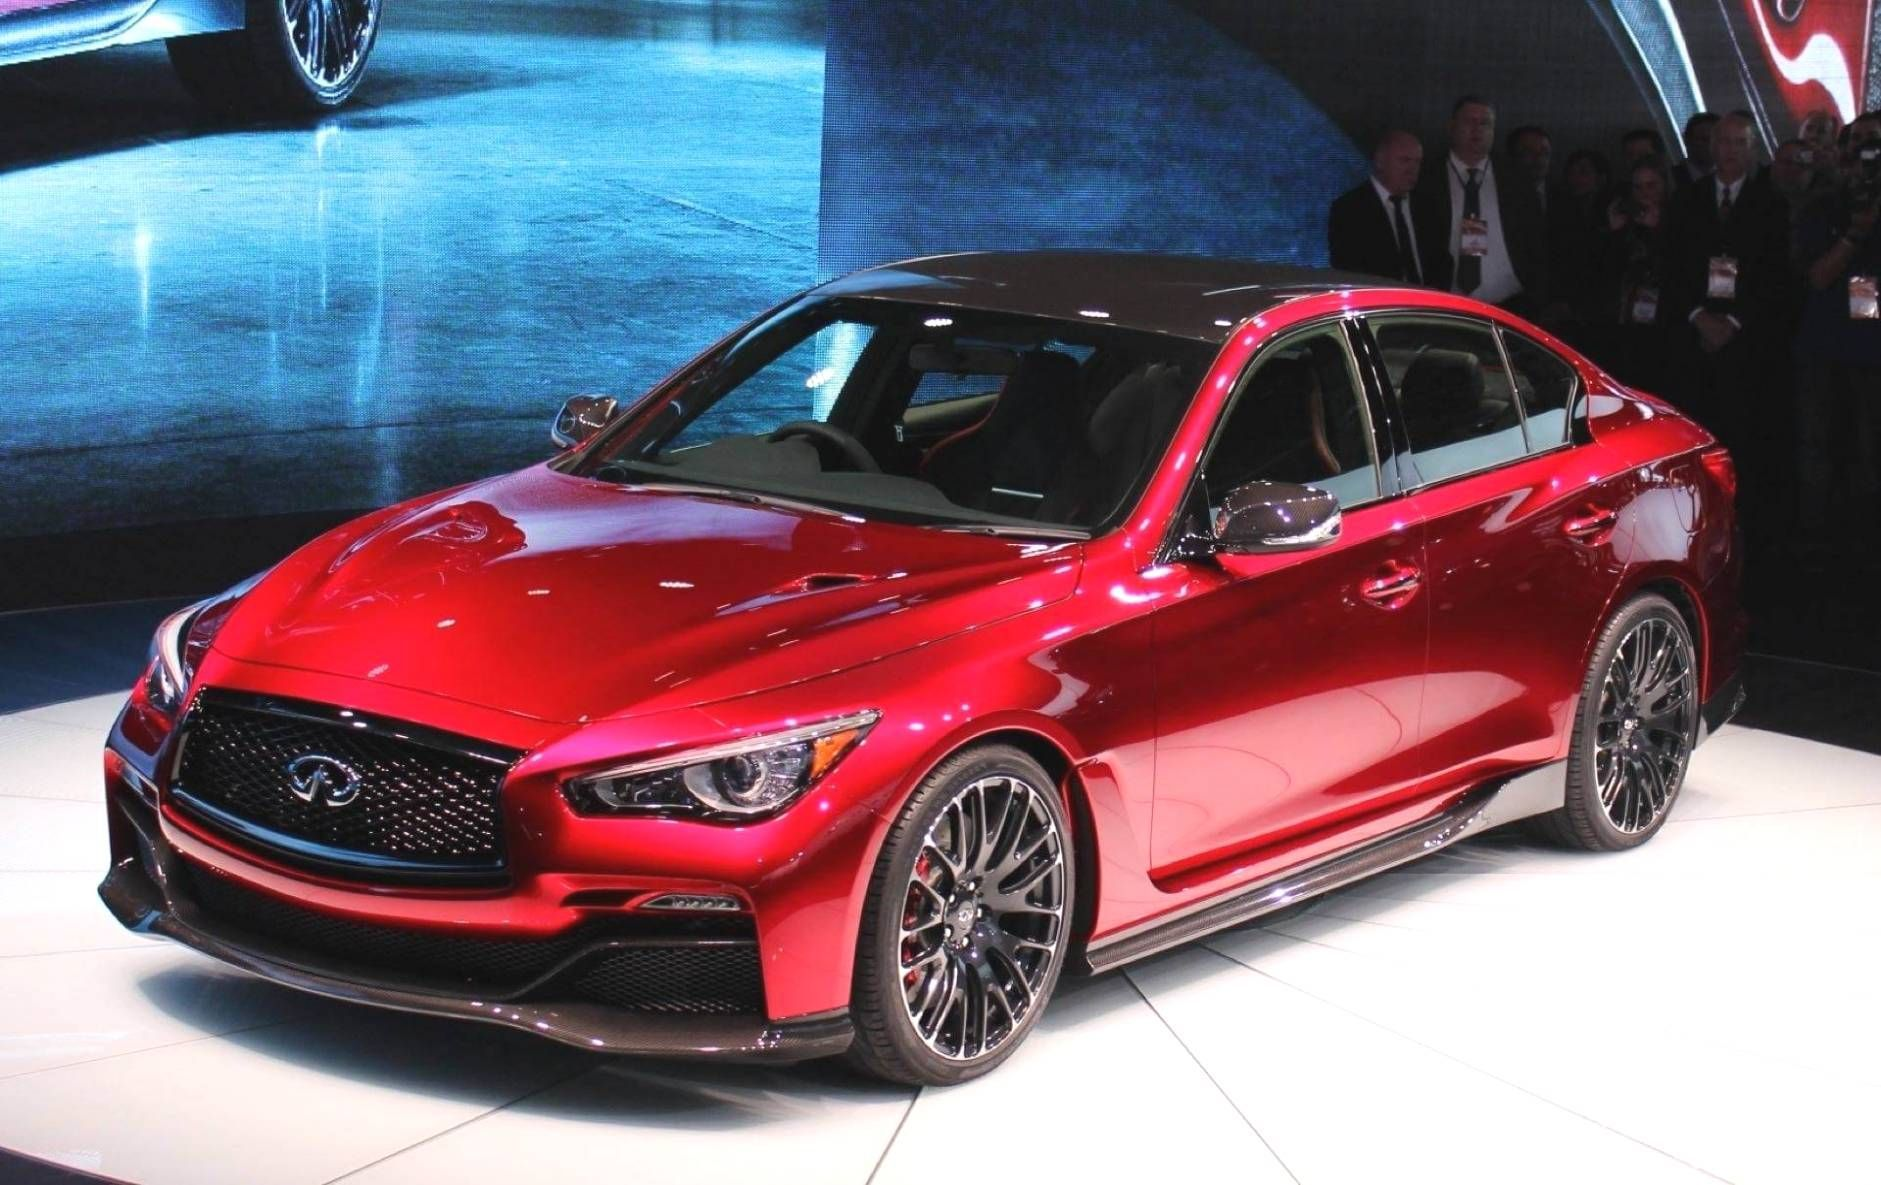 2019 New Cars Coming Out 2019 New Car Models 2019 Cars Worth Waiting For 2019 2020 Official Site For New Infiniti Q50 Infiniti Q50 Red Sport Infiniti